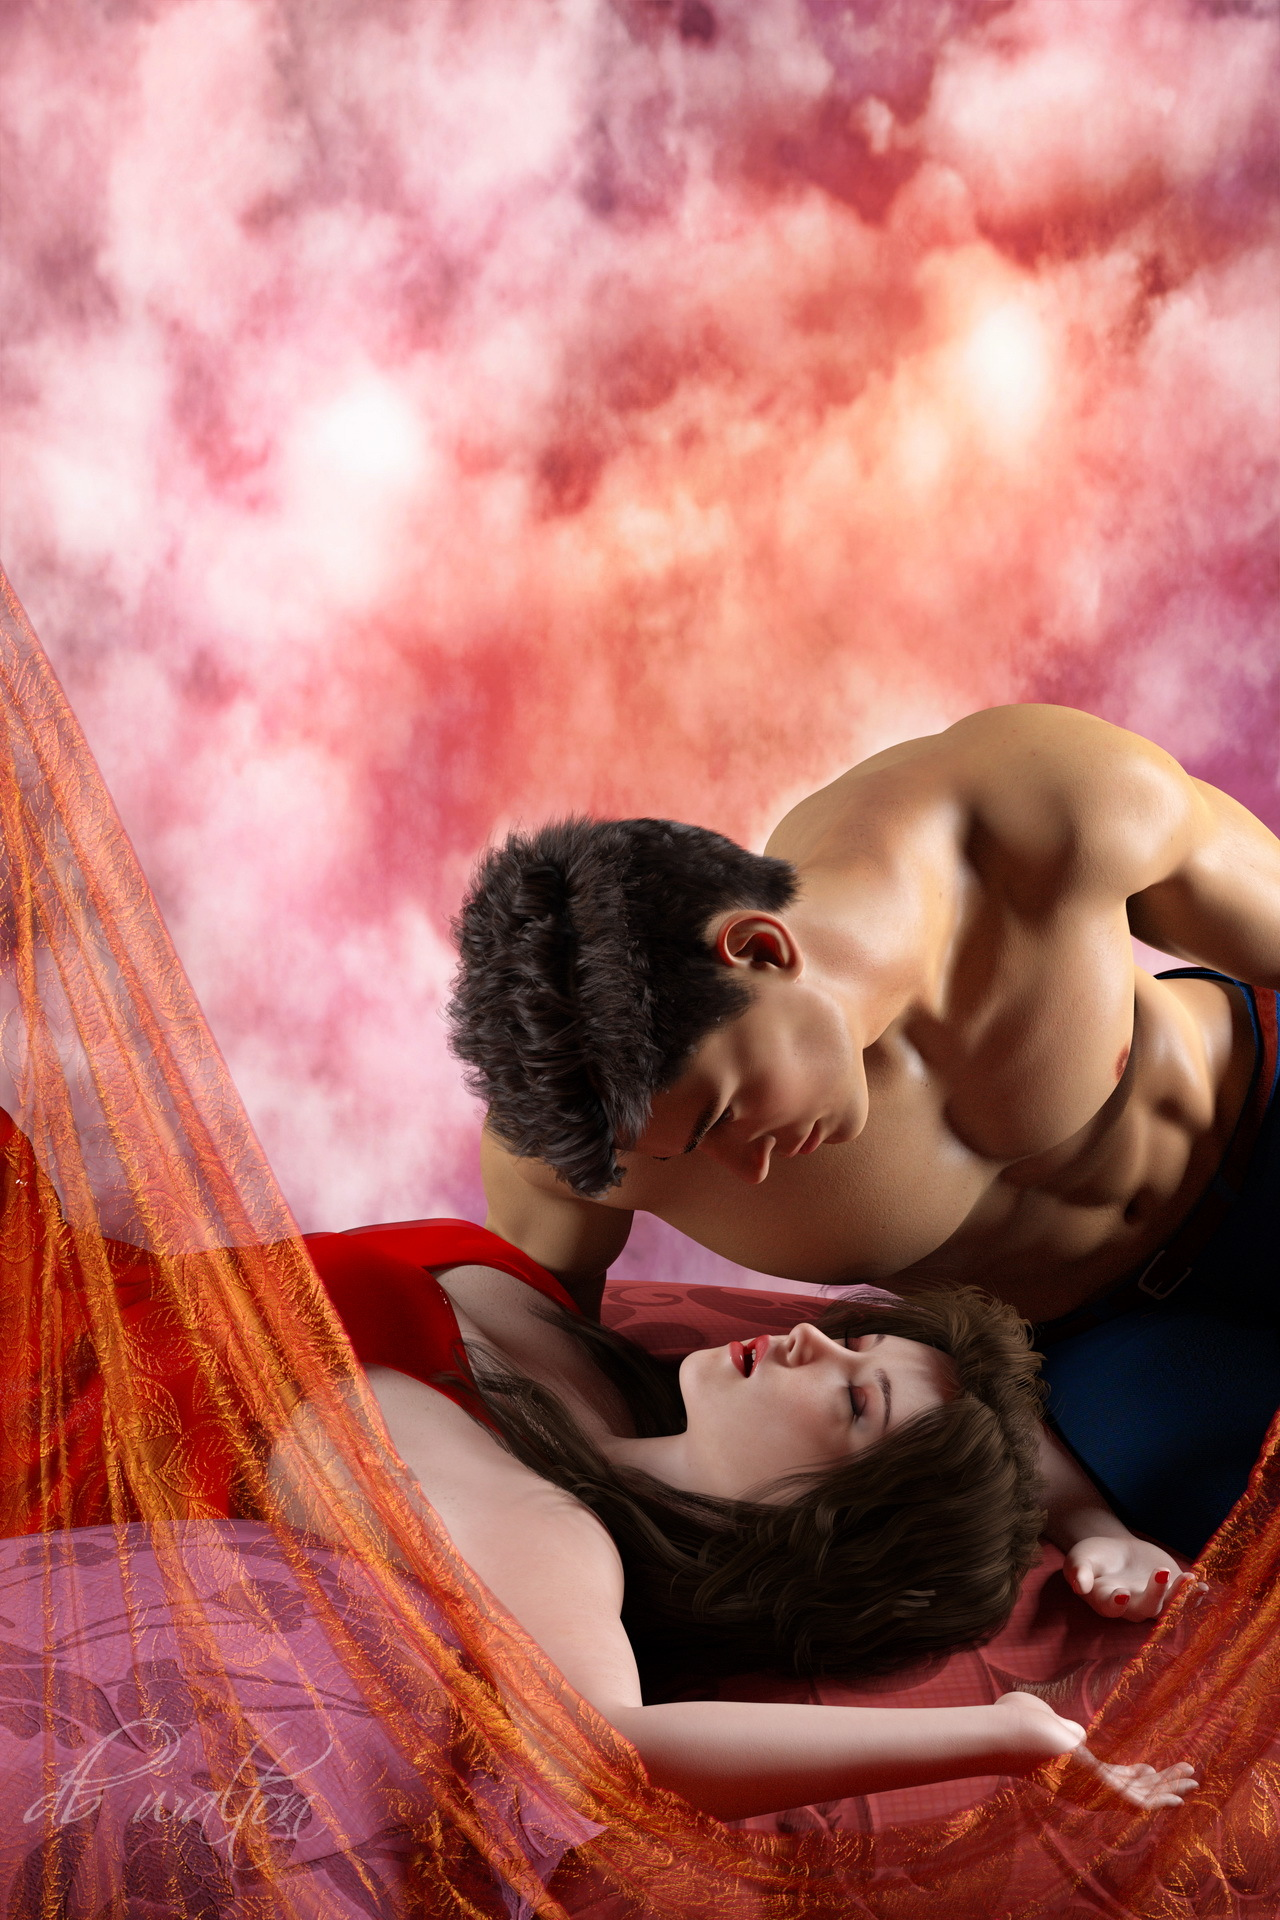 Romance on a Bed of Pillows I by dbwalton